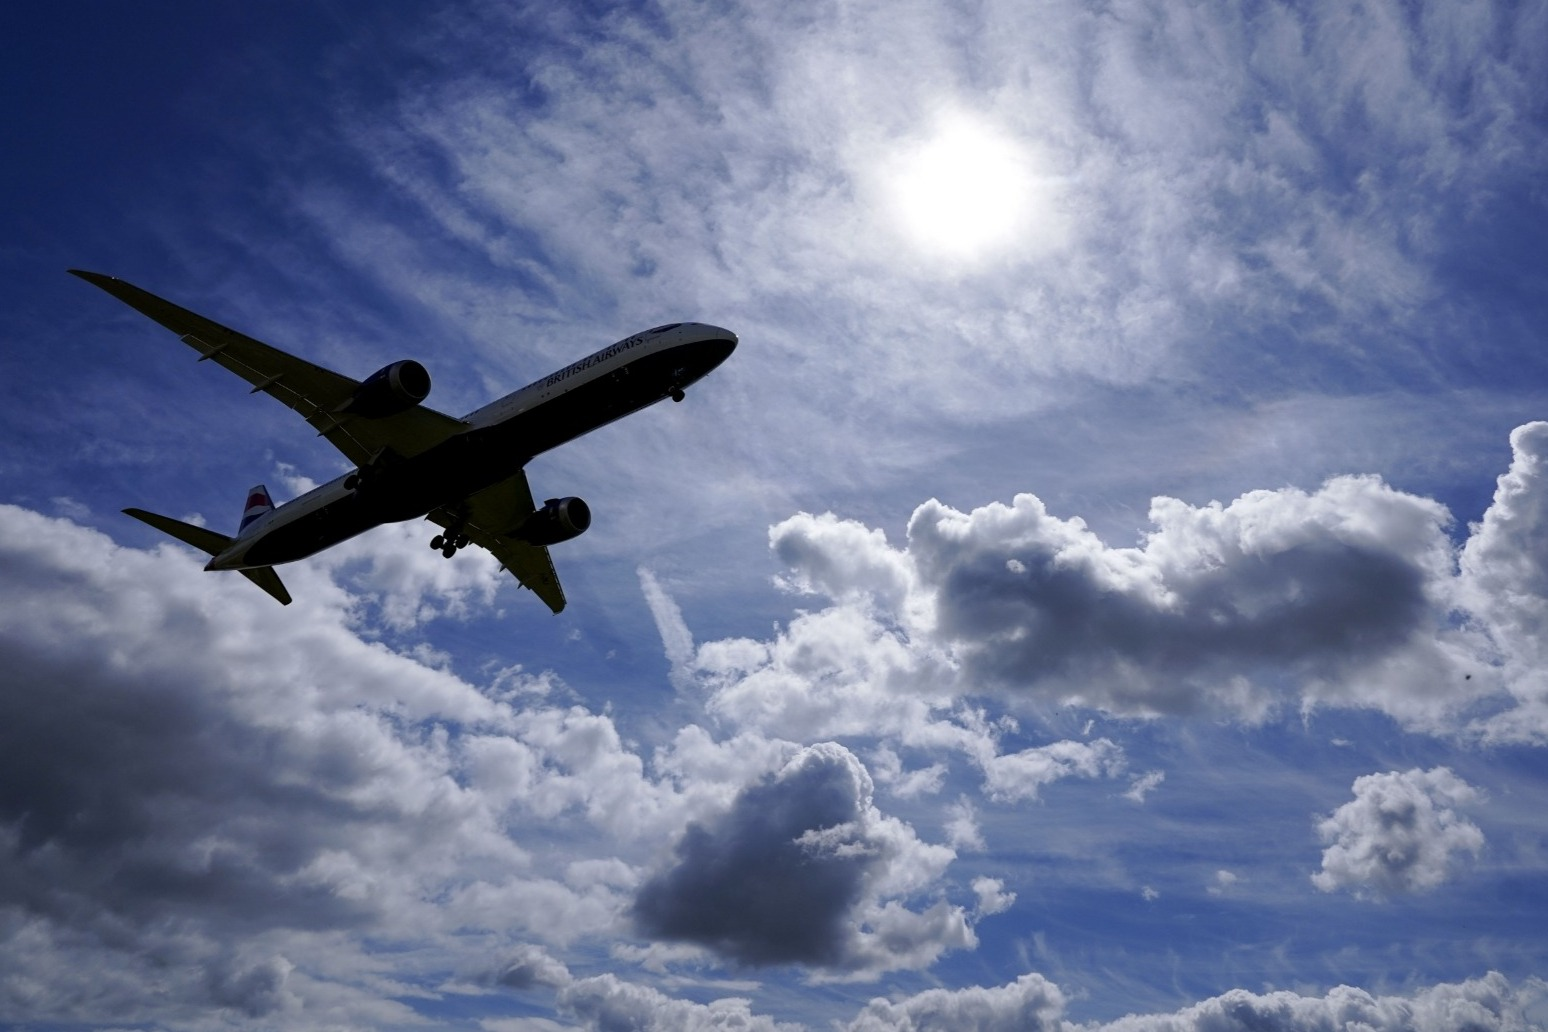 Covid tests for travel should be capped at £40 to save aviation sector – Tory MP